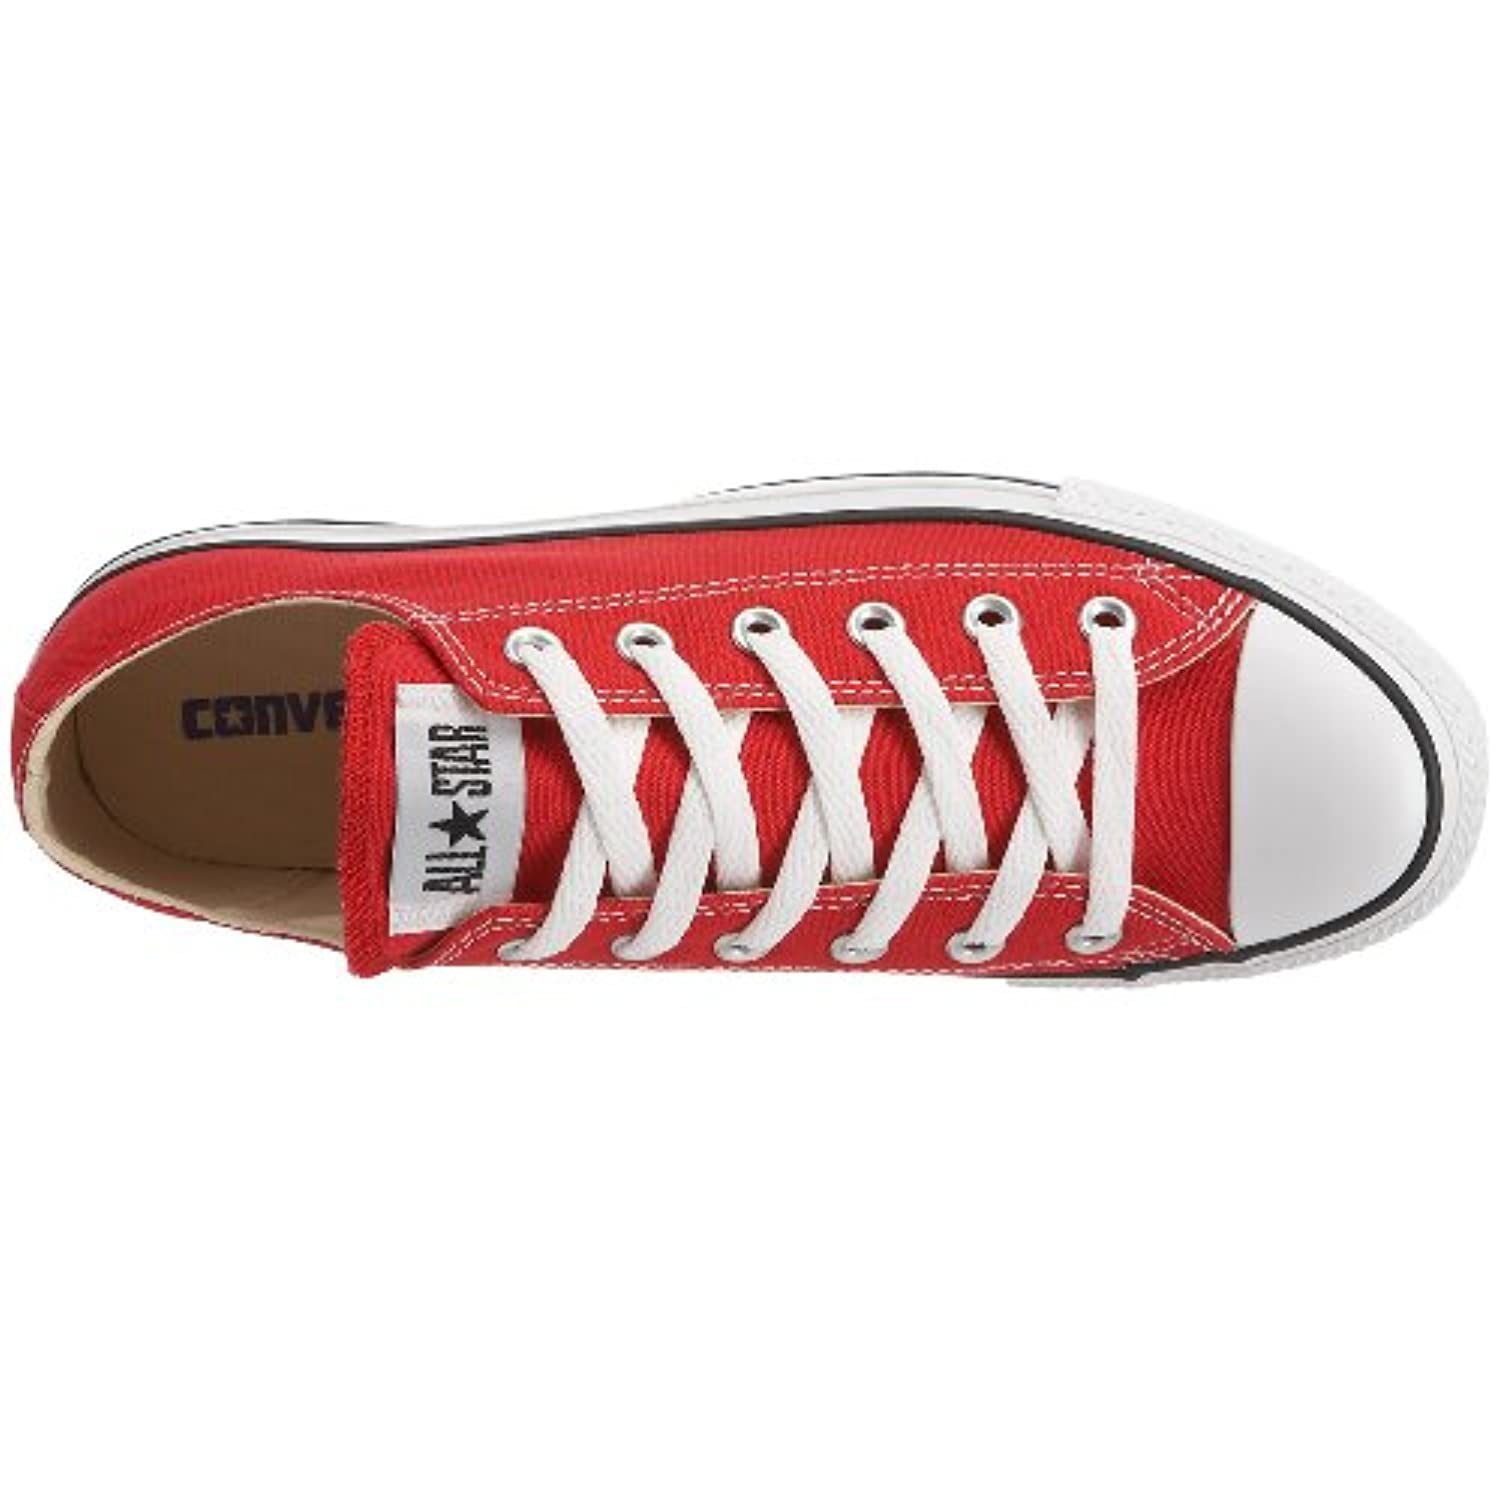 Converse Chuck Taylor All Star, Unisex-Adults' Trainers, Red, 3.5 UK (36 EU)